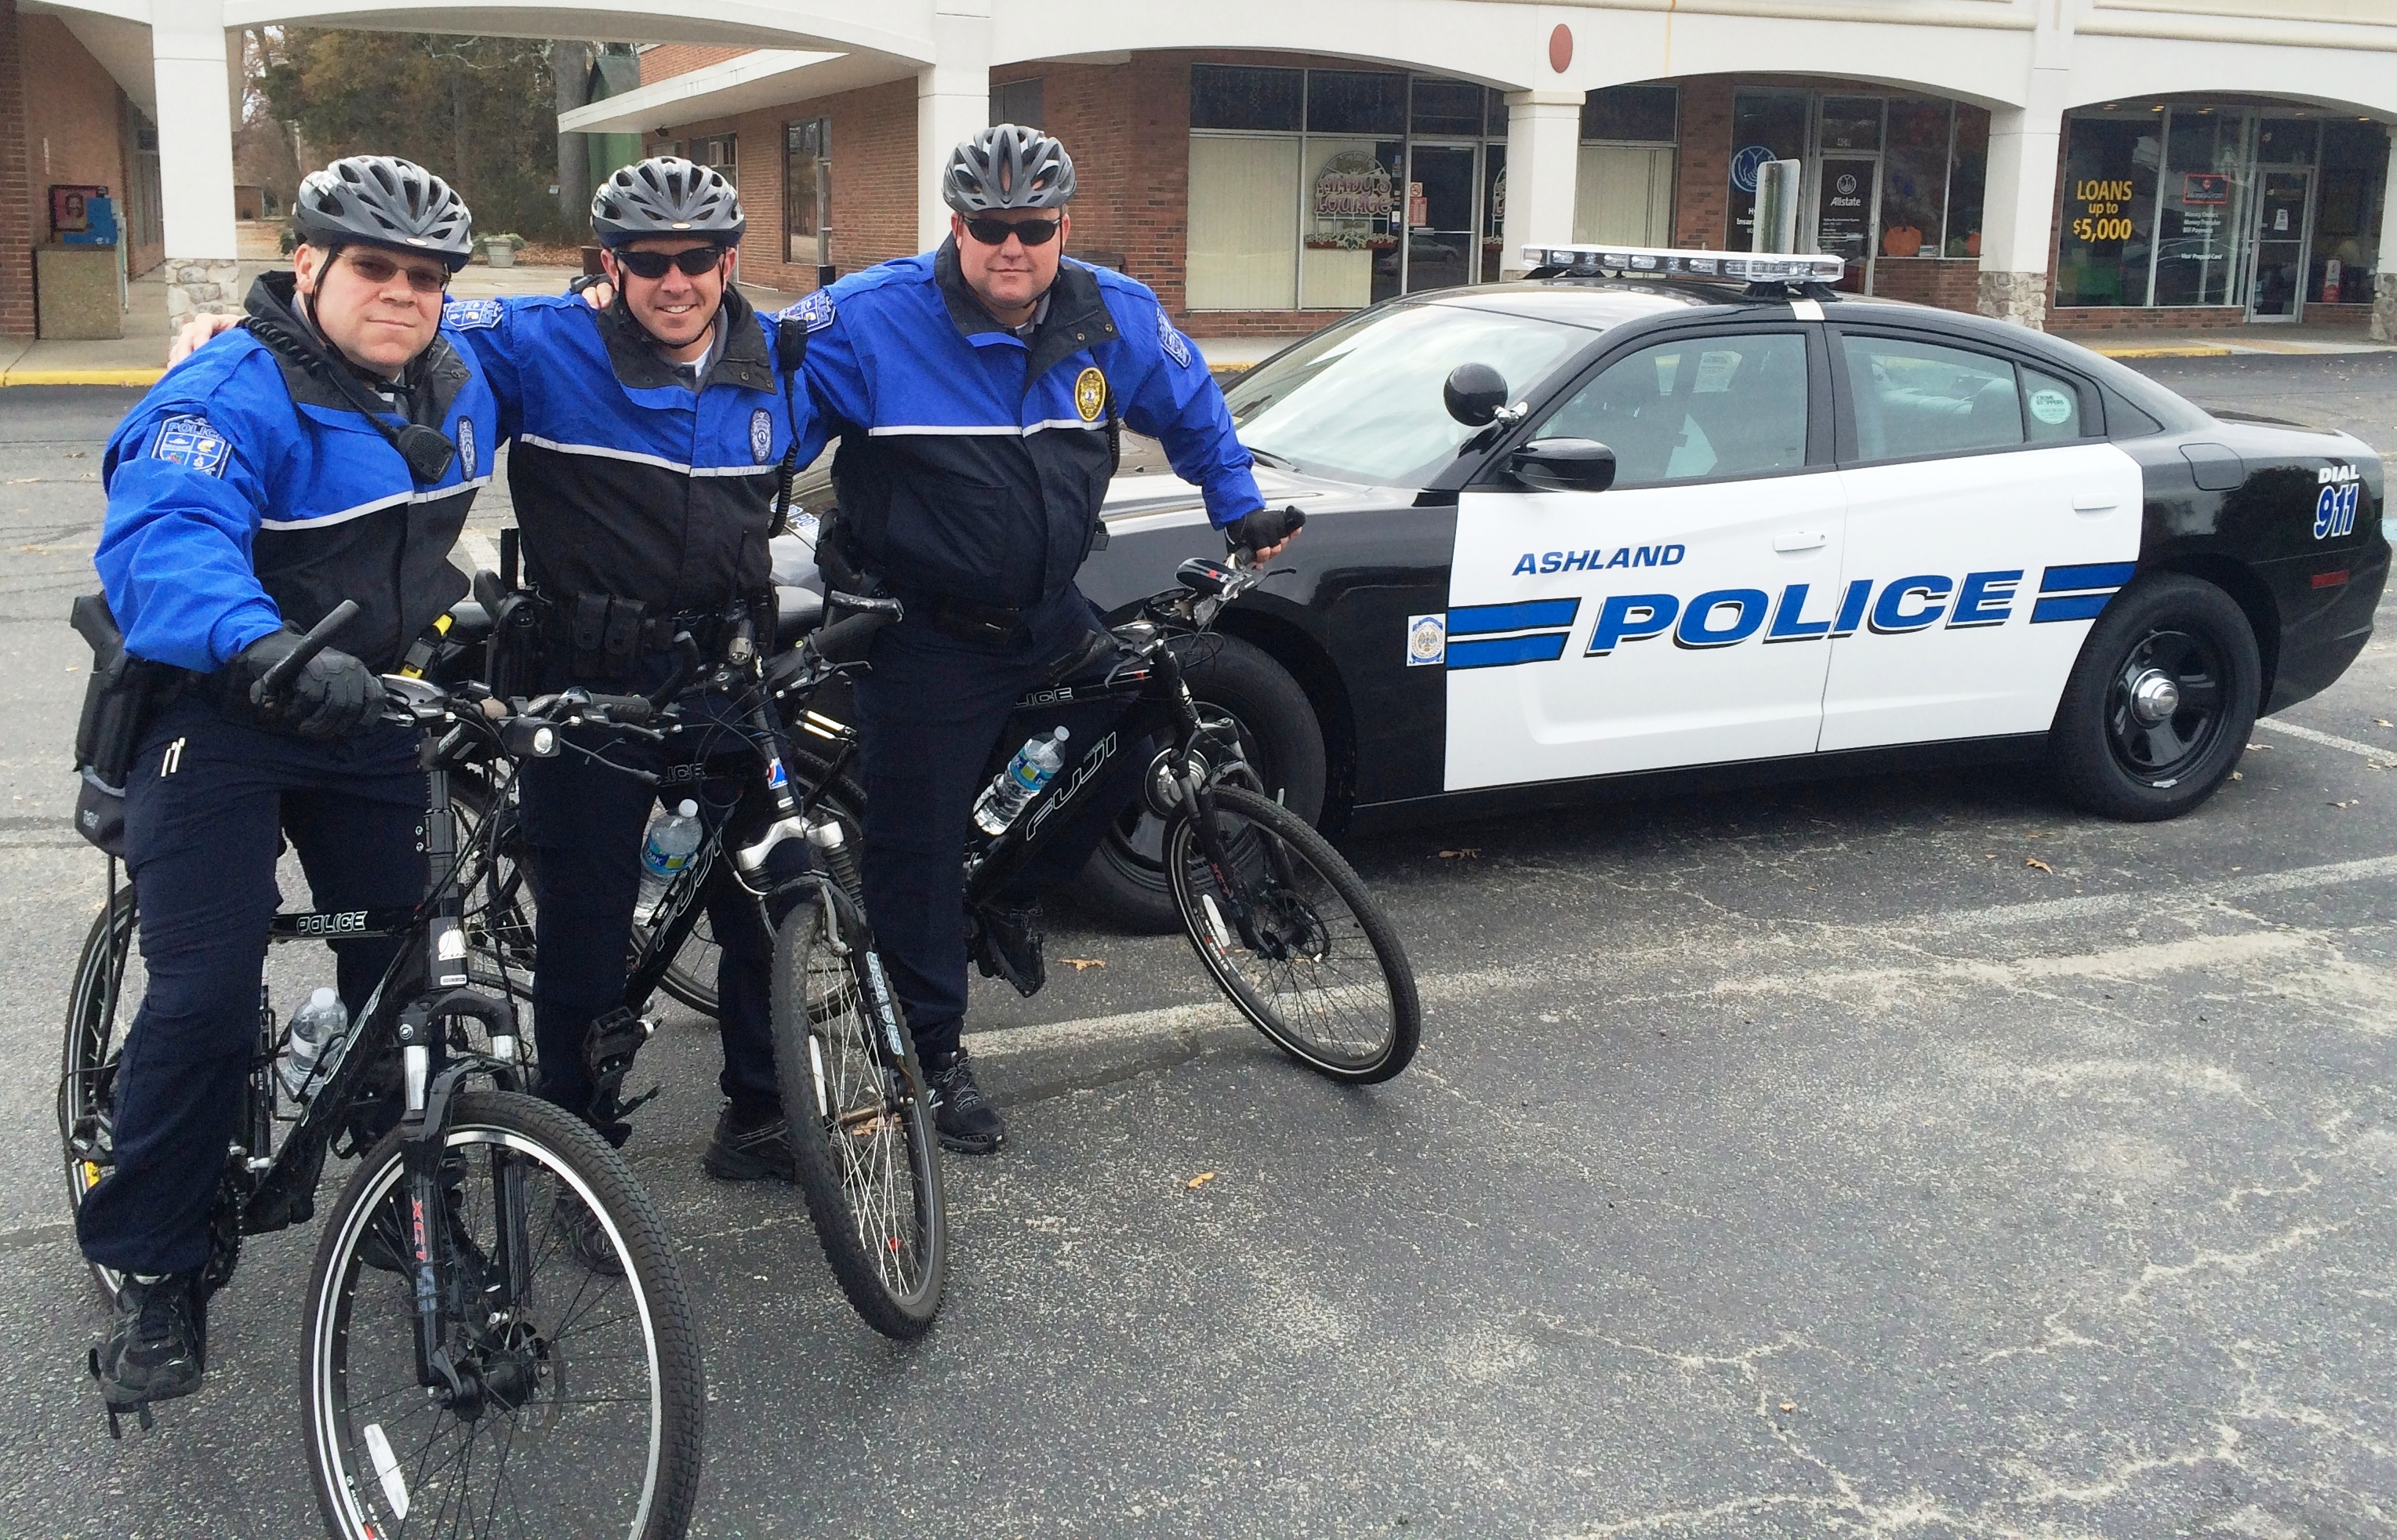 Group Bike Patrol